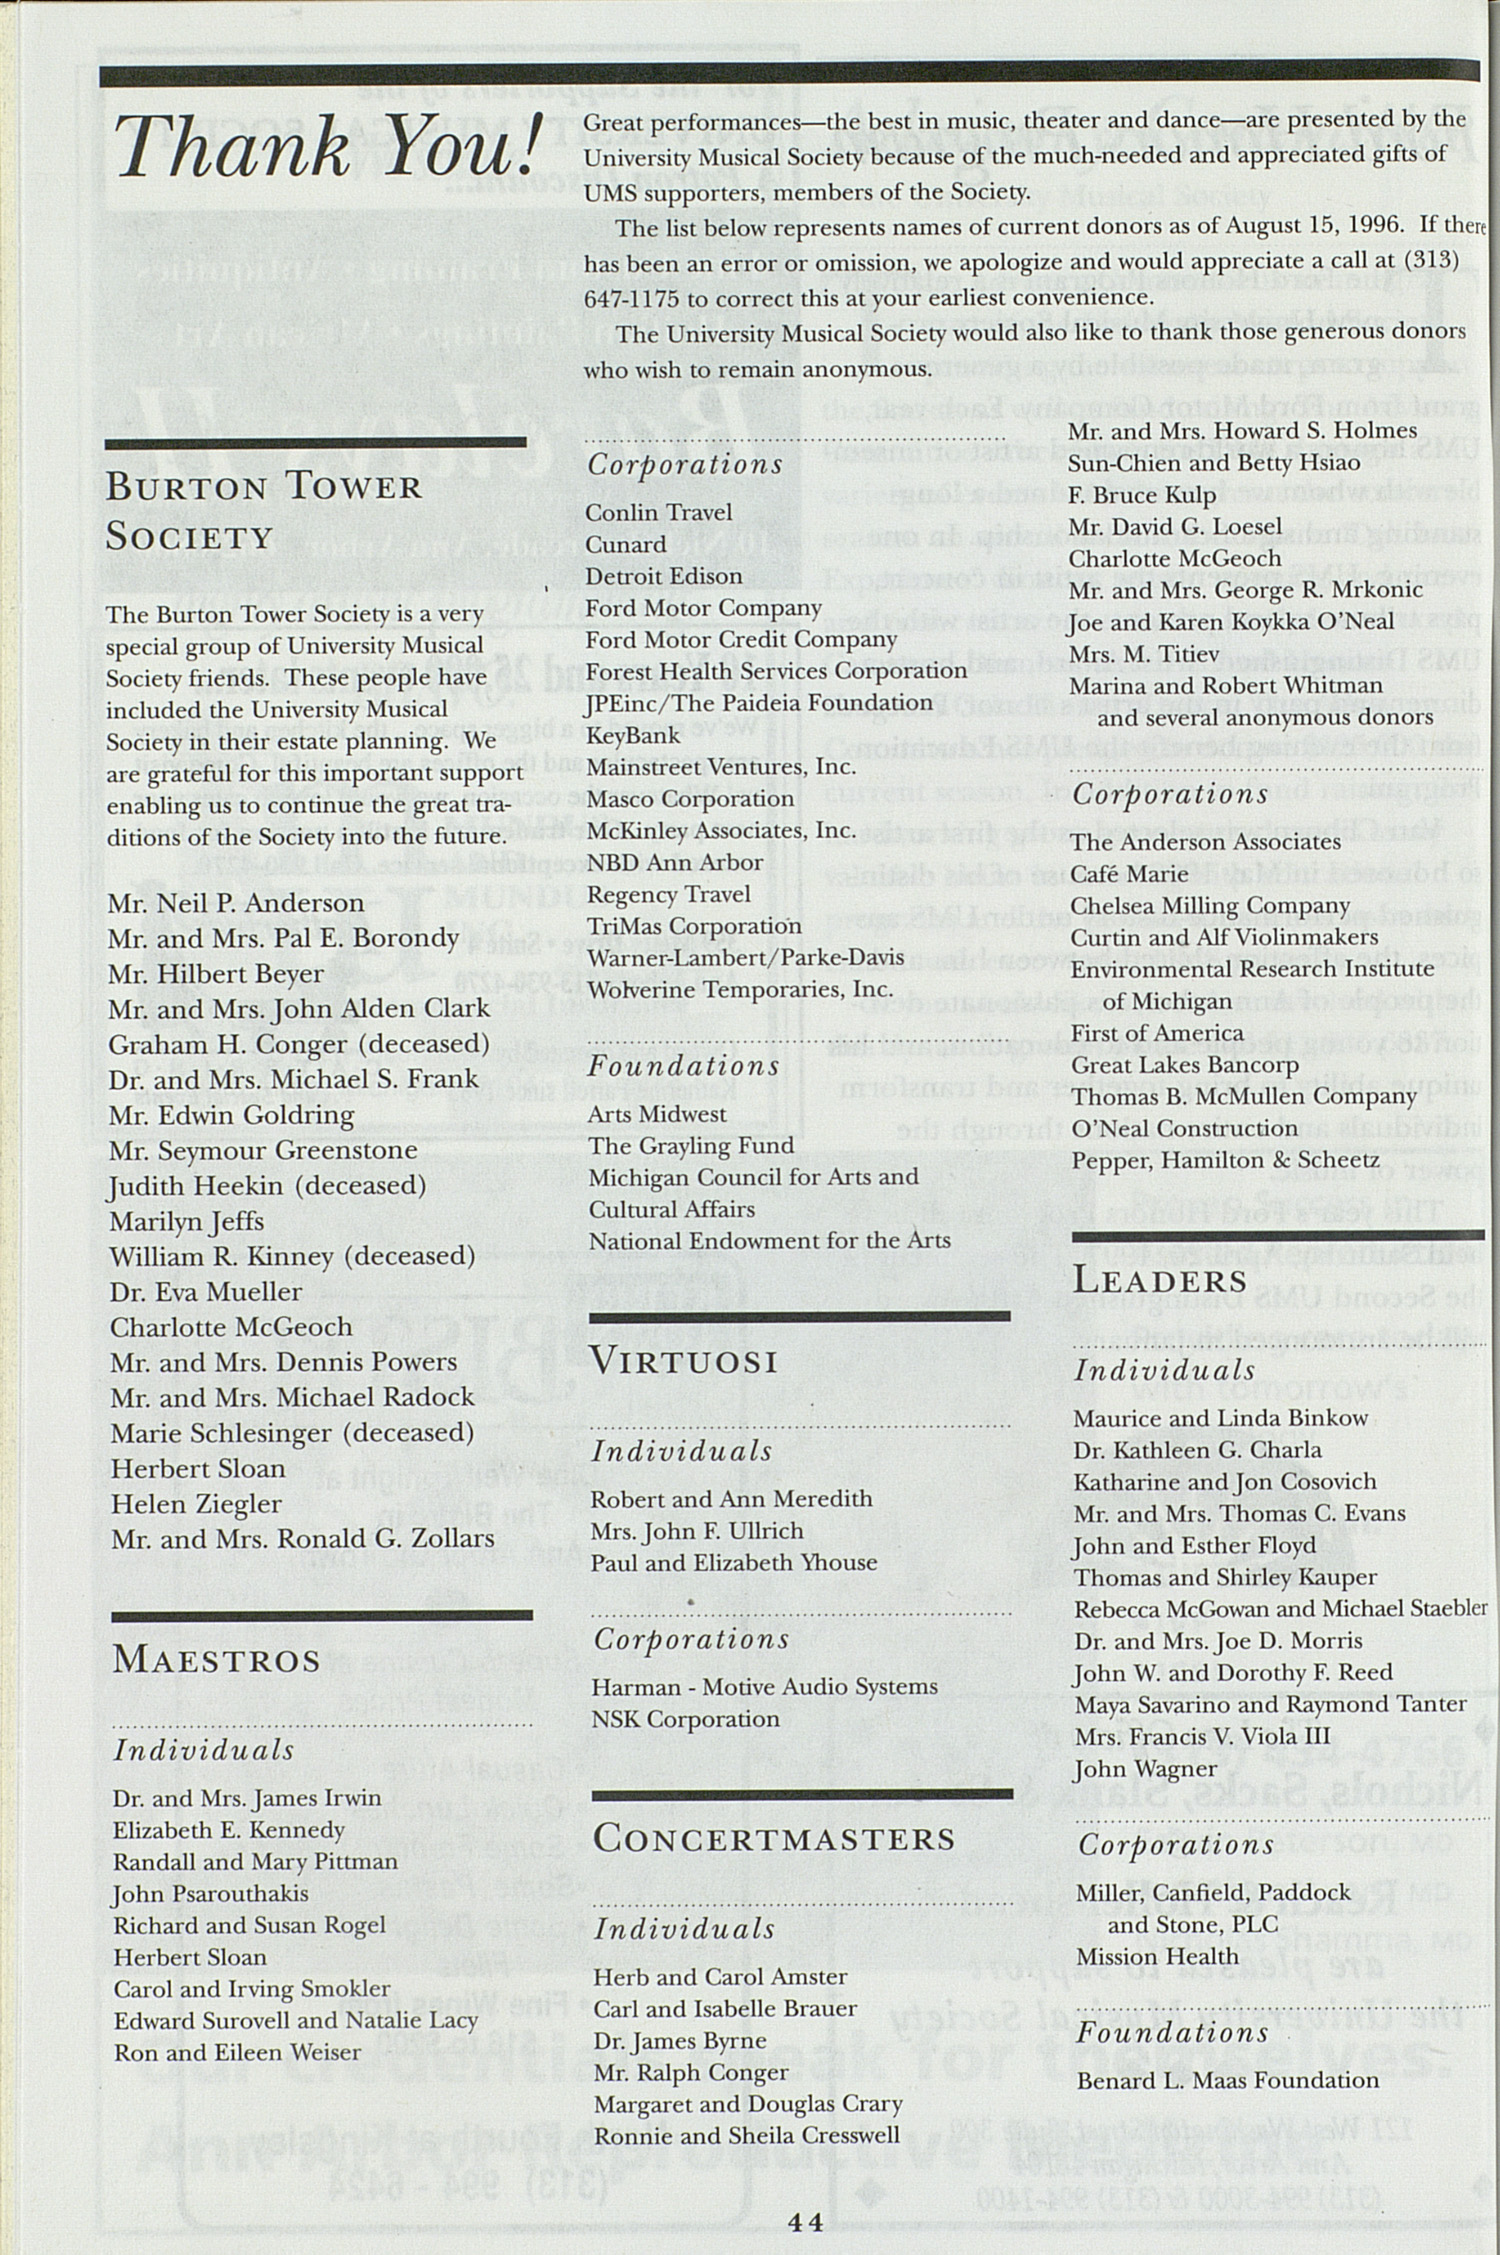 UMS Concert Program, Friday Sep. 27 To Oct. 13: University Musical Society: 1996-1997 Fall - Friday Sep. 27 To Oct. 13 --  image